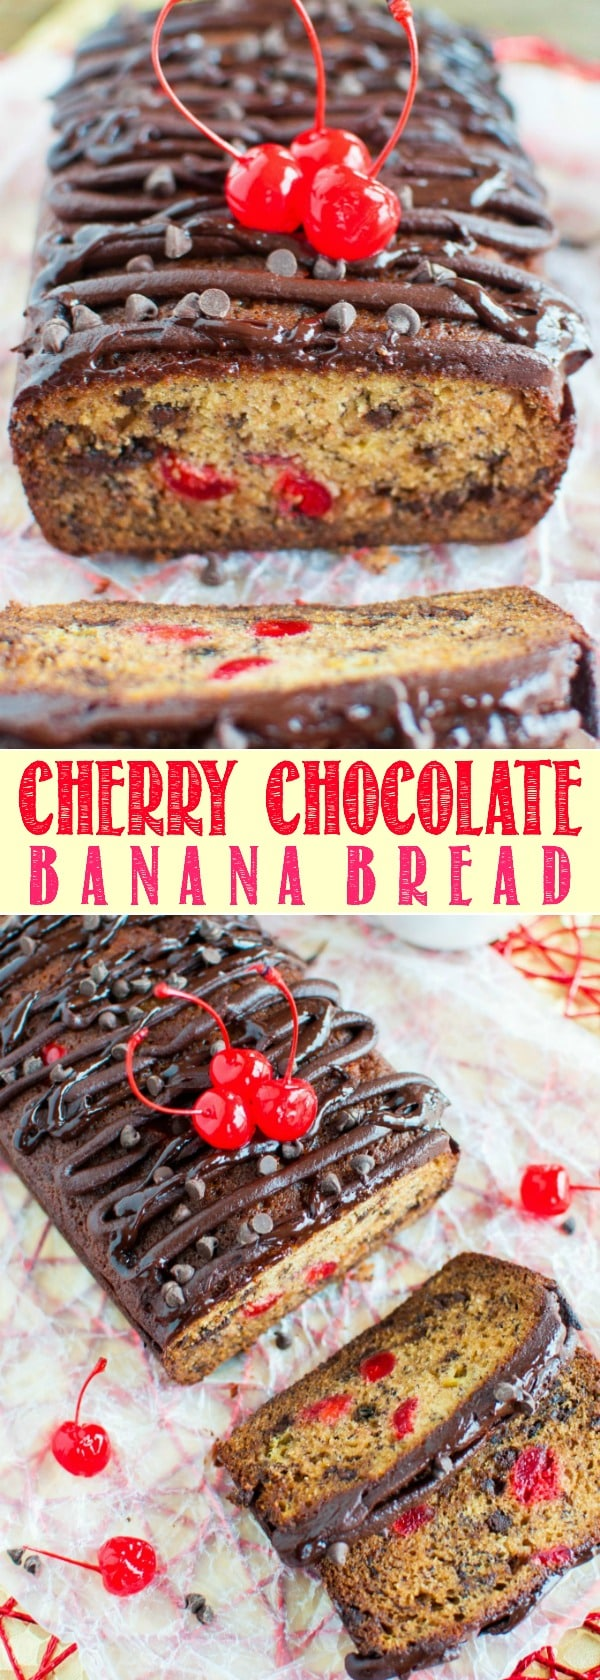 This Cherry Chocolate Banana Bread is so moist and flavorful, loaded with cherries and chocolate! Chocolate ganache and cherries on top make it irresistible! Great recipe for Valentines Day!